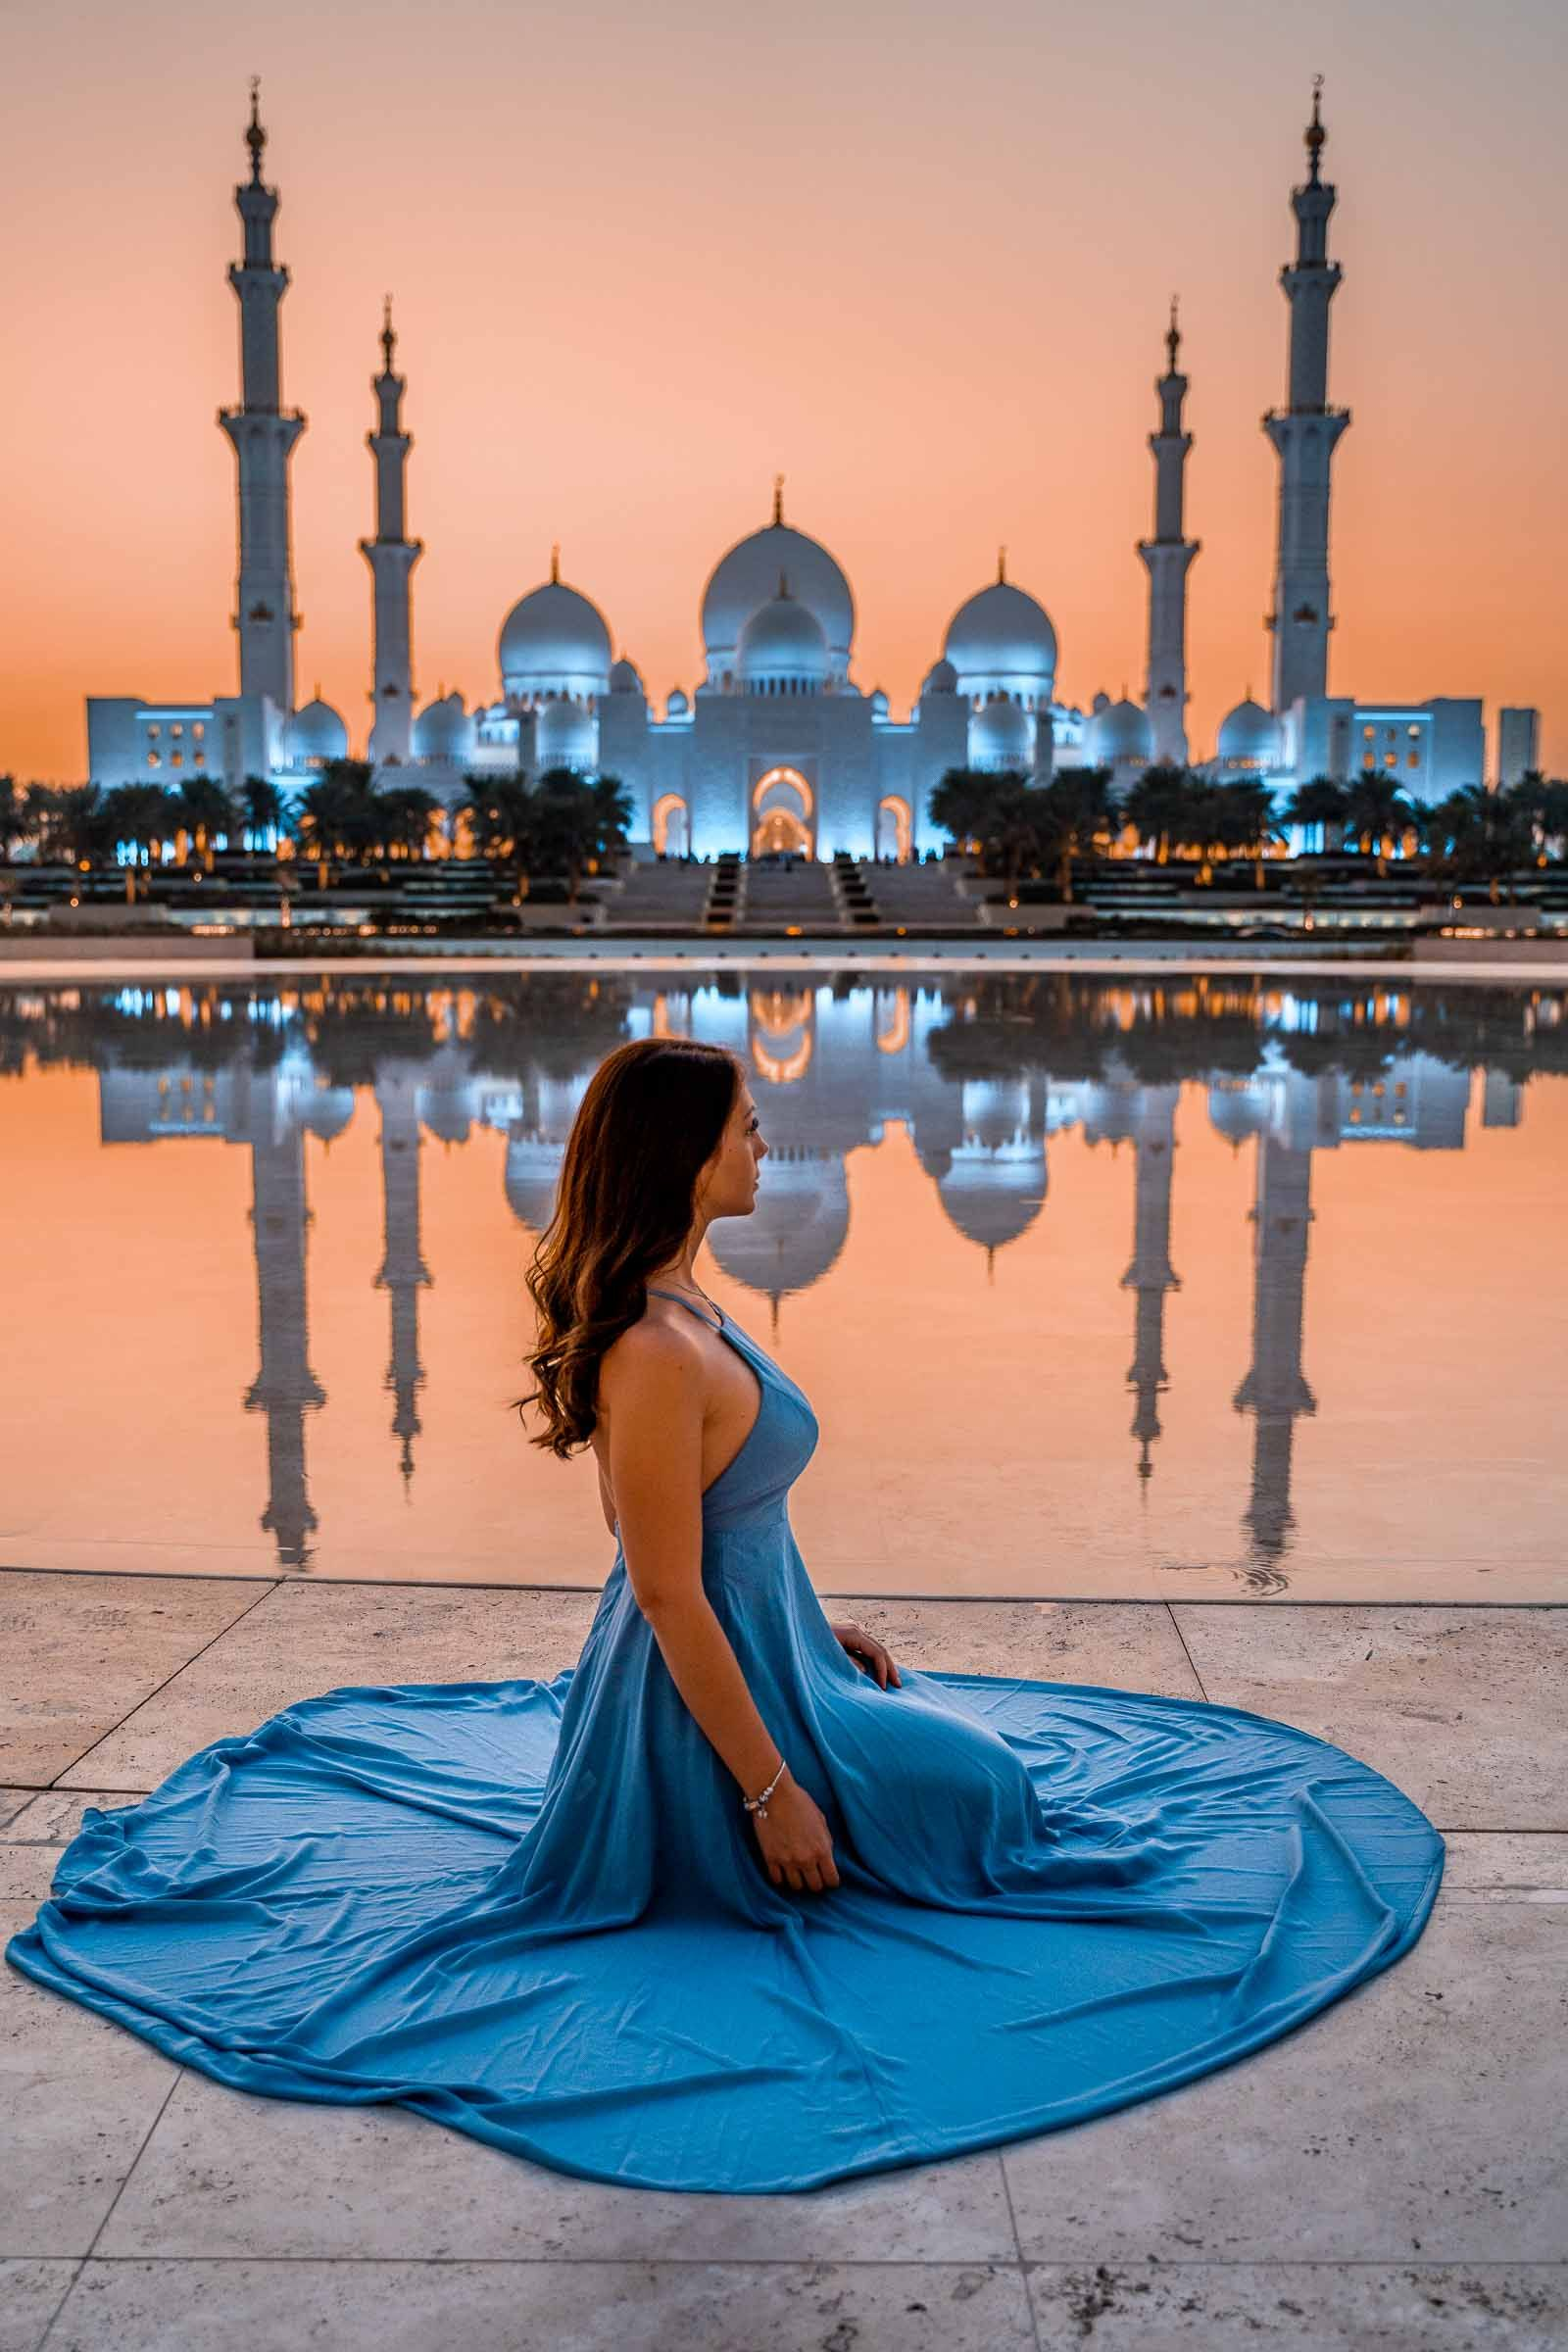 Most Instagrammable Places In Abu Dhabi Dubai Vacation Dubai Travel Travel Dreams